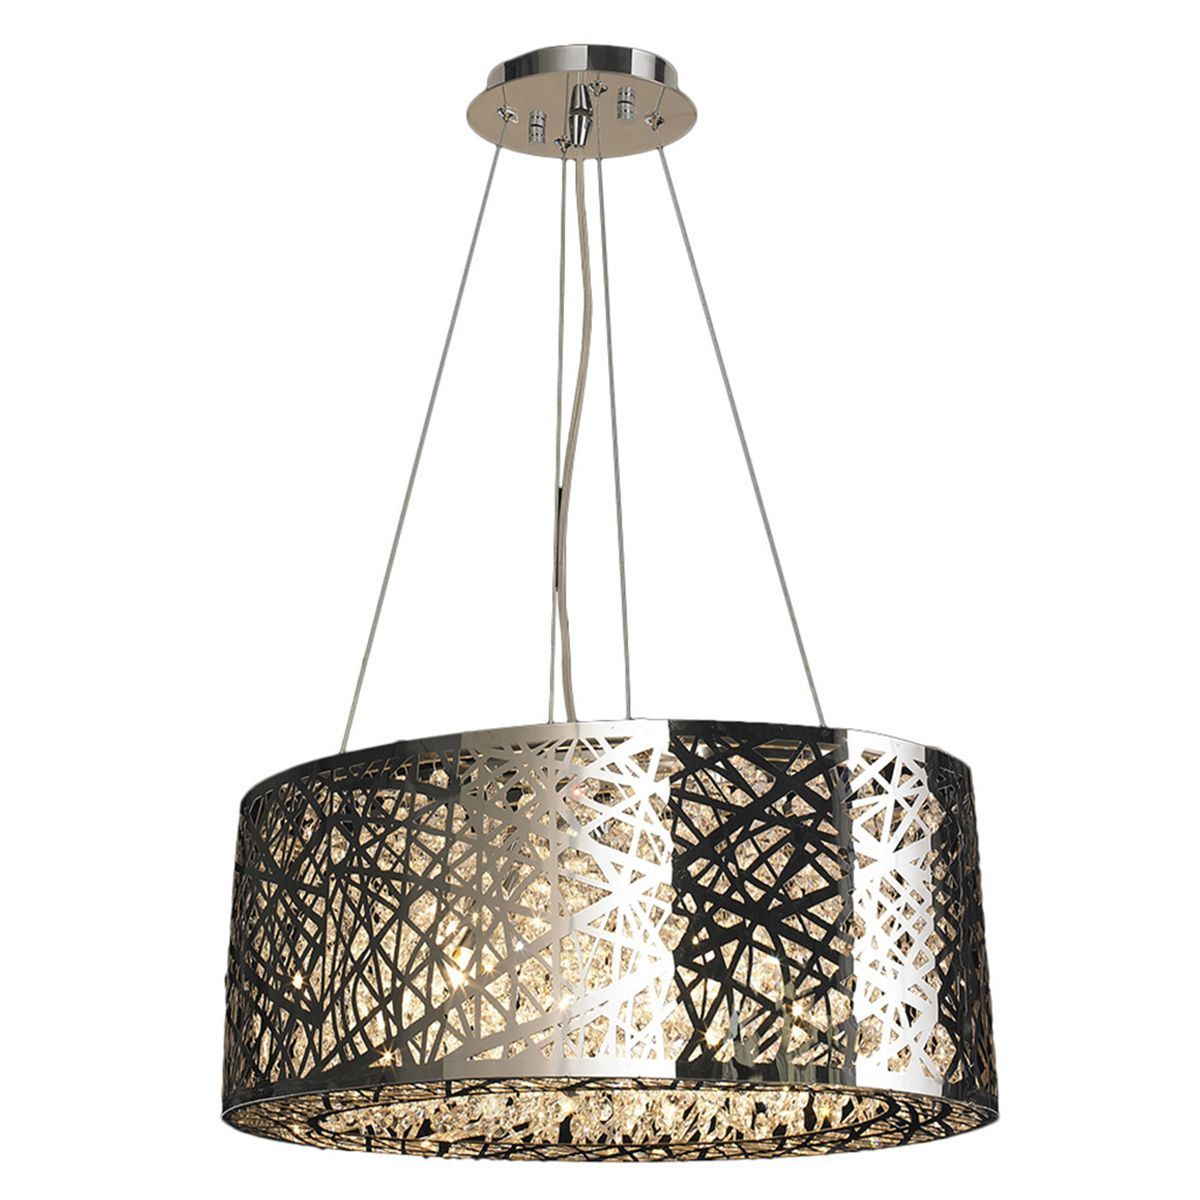 High gloss 8 led light polished chrome finish and clear crystal 20 high gloss 8 led light polished chrome finish and clear crystal oval suspension chandelier this chandelier measures 20 inches round x 11 inches high and arubaitofo Images